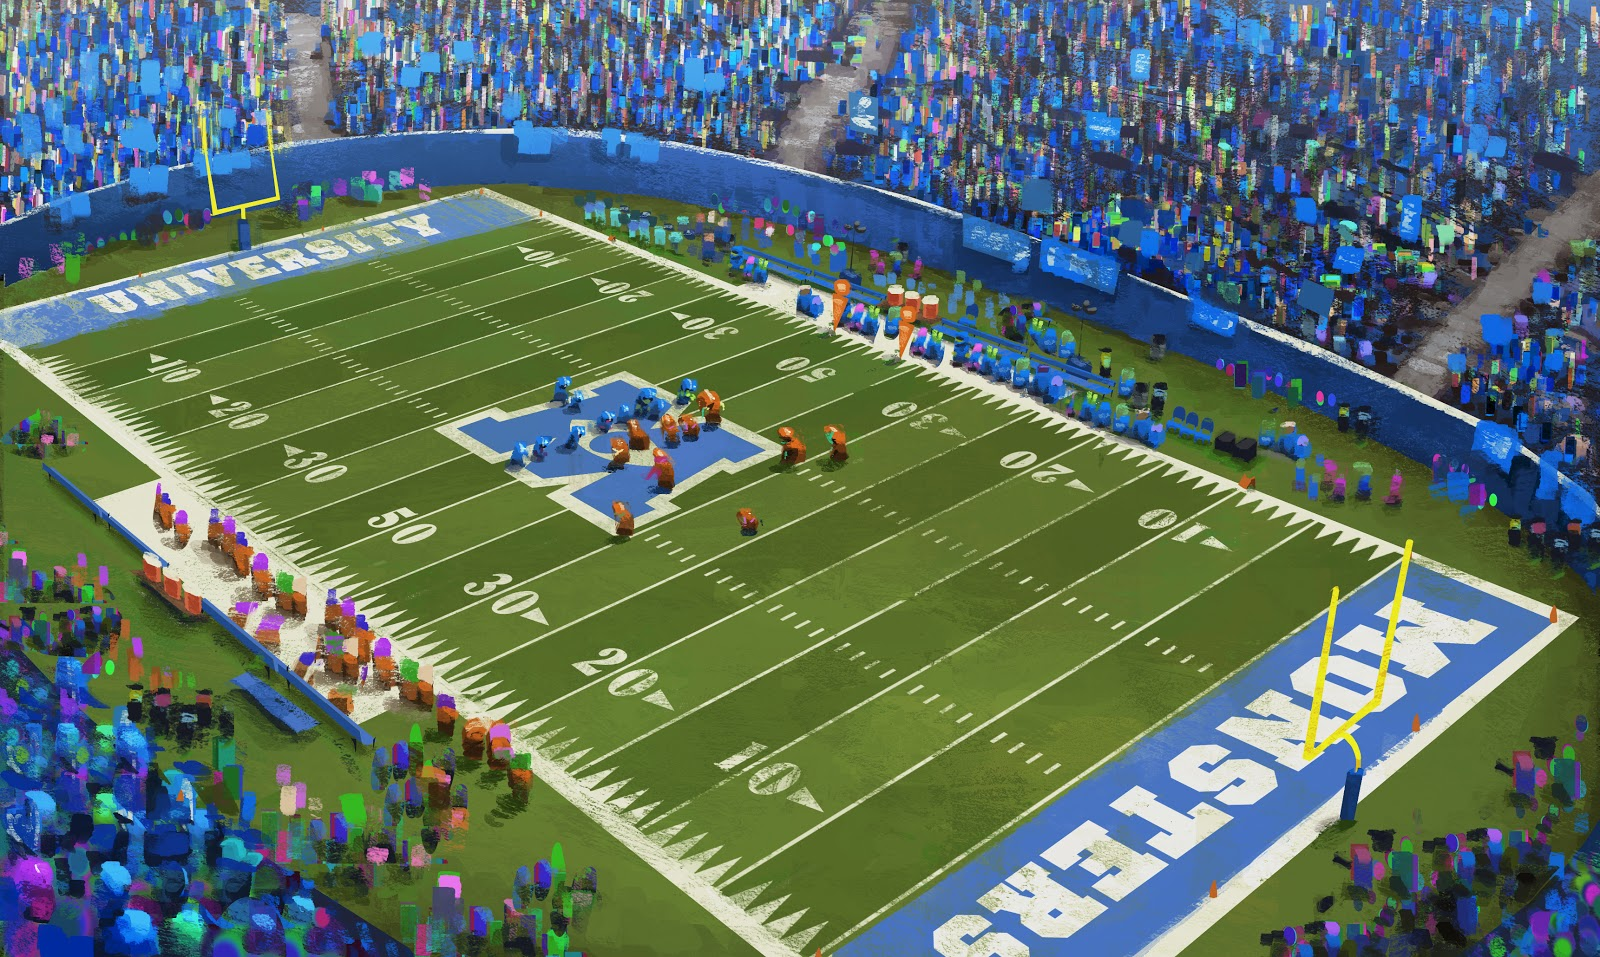 Monsters University Concept Art - Stadium